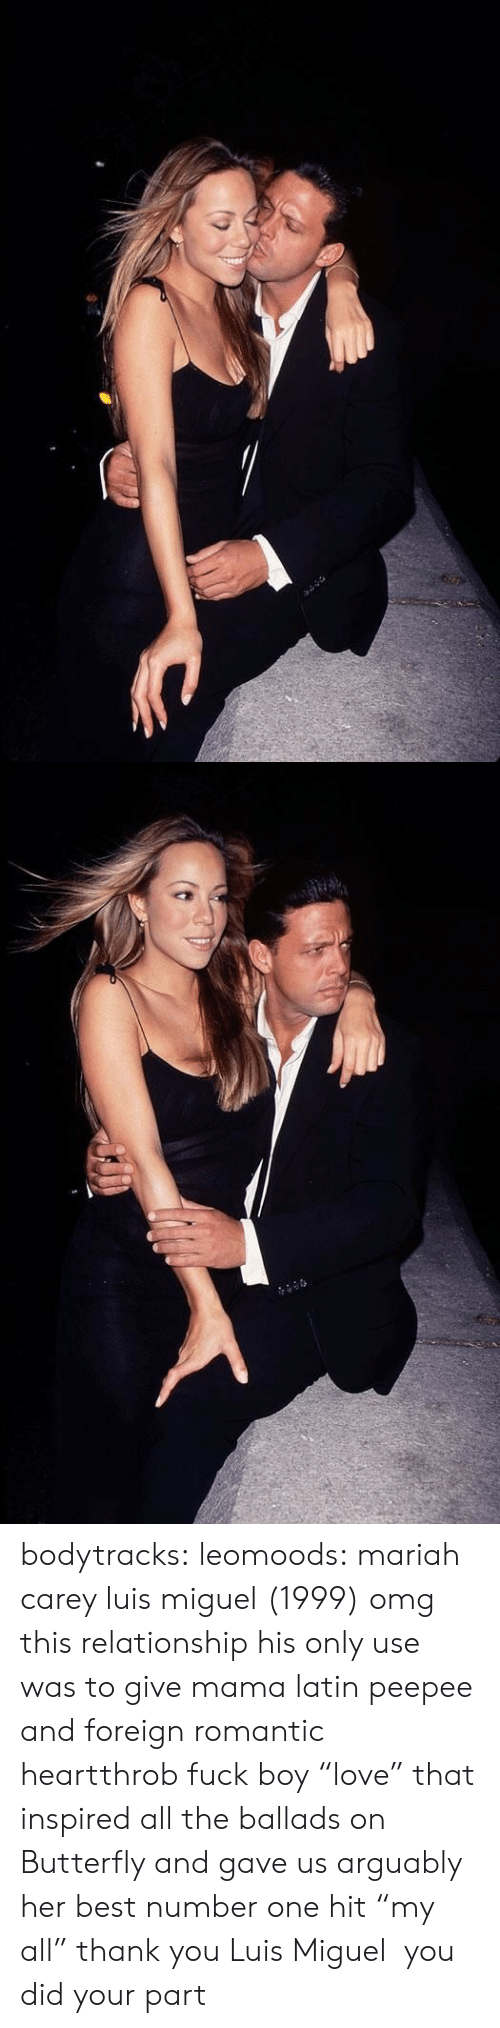 "Mariah Carey, Omg, and Tumblr: bodytracks: leomoods: mariah carey  luis miguel (1999) omg this relationship  his only use was to give mama latin peepee and foreign romantic heartthrob fuck boy ""love"" that inspired all the ballads on Butterfly and gave us arguably her best number one hit ""my all"" thank you Luis Miguel  you did your part"